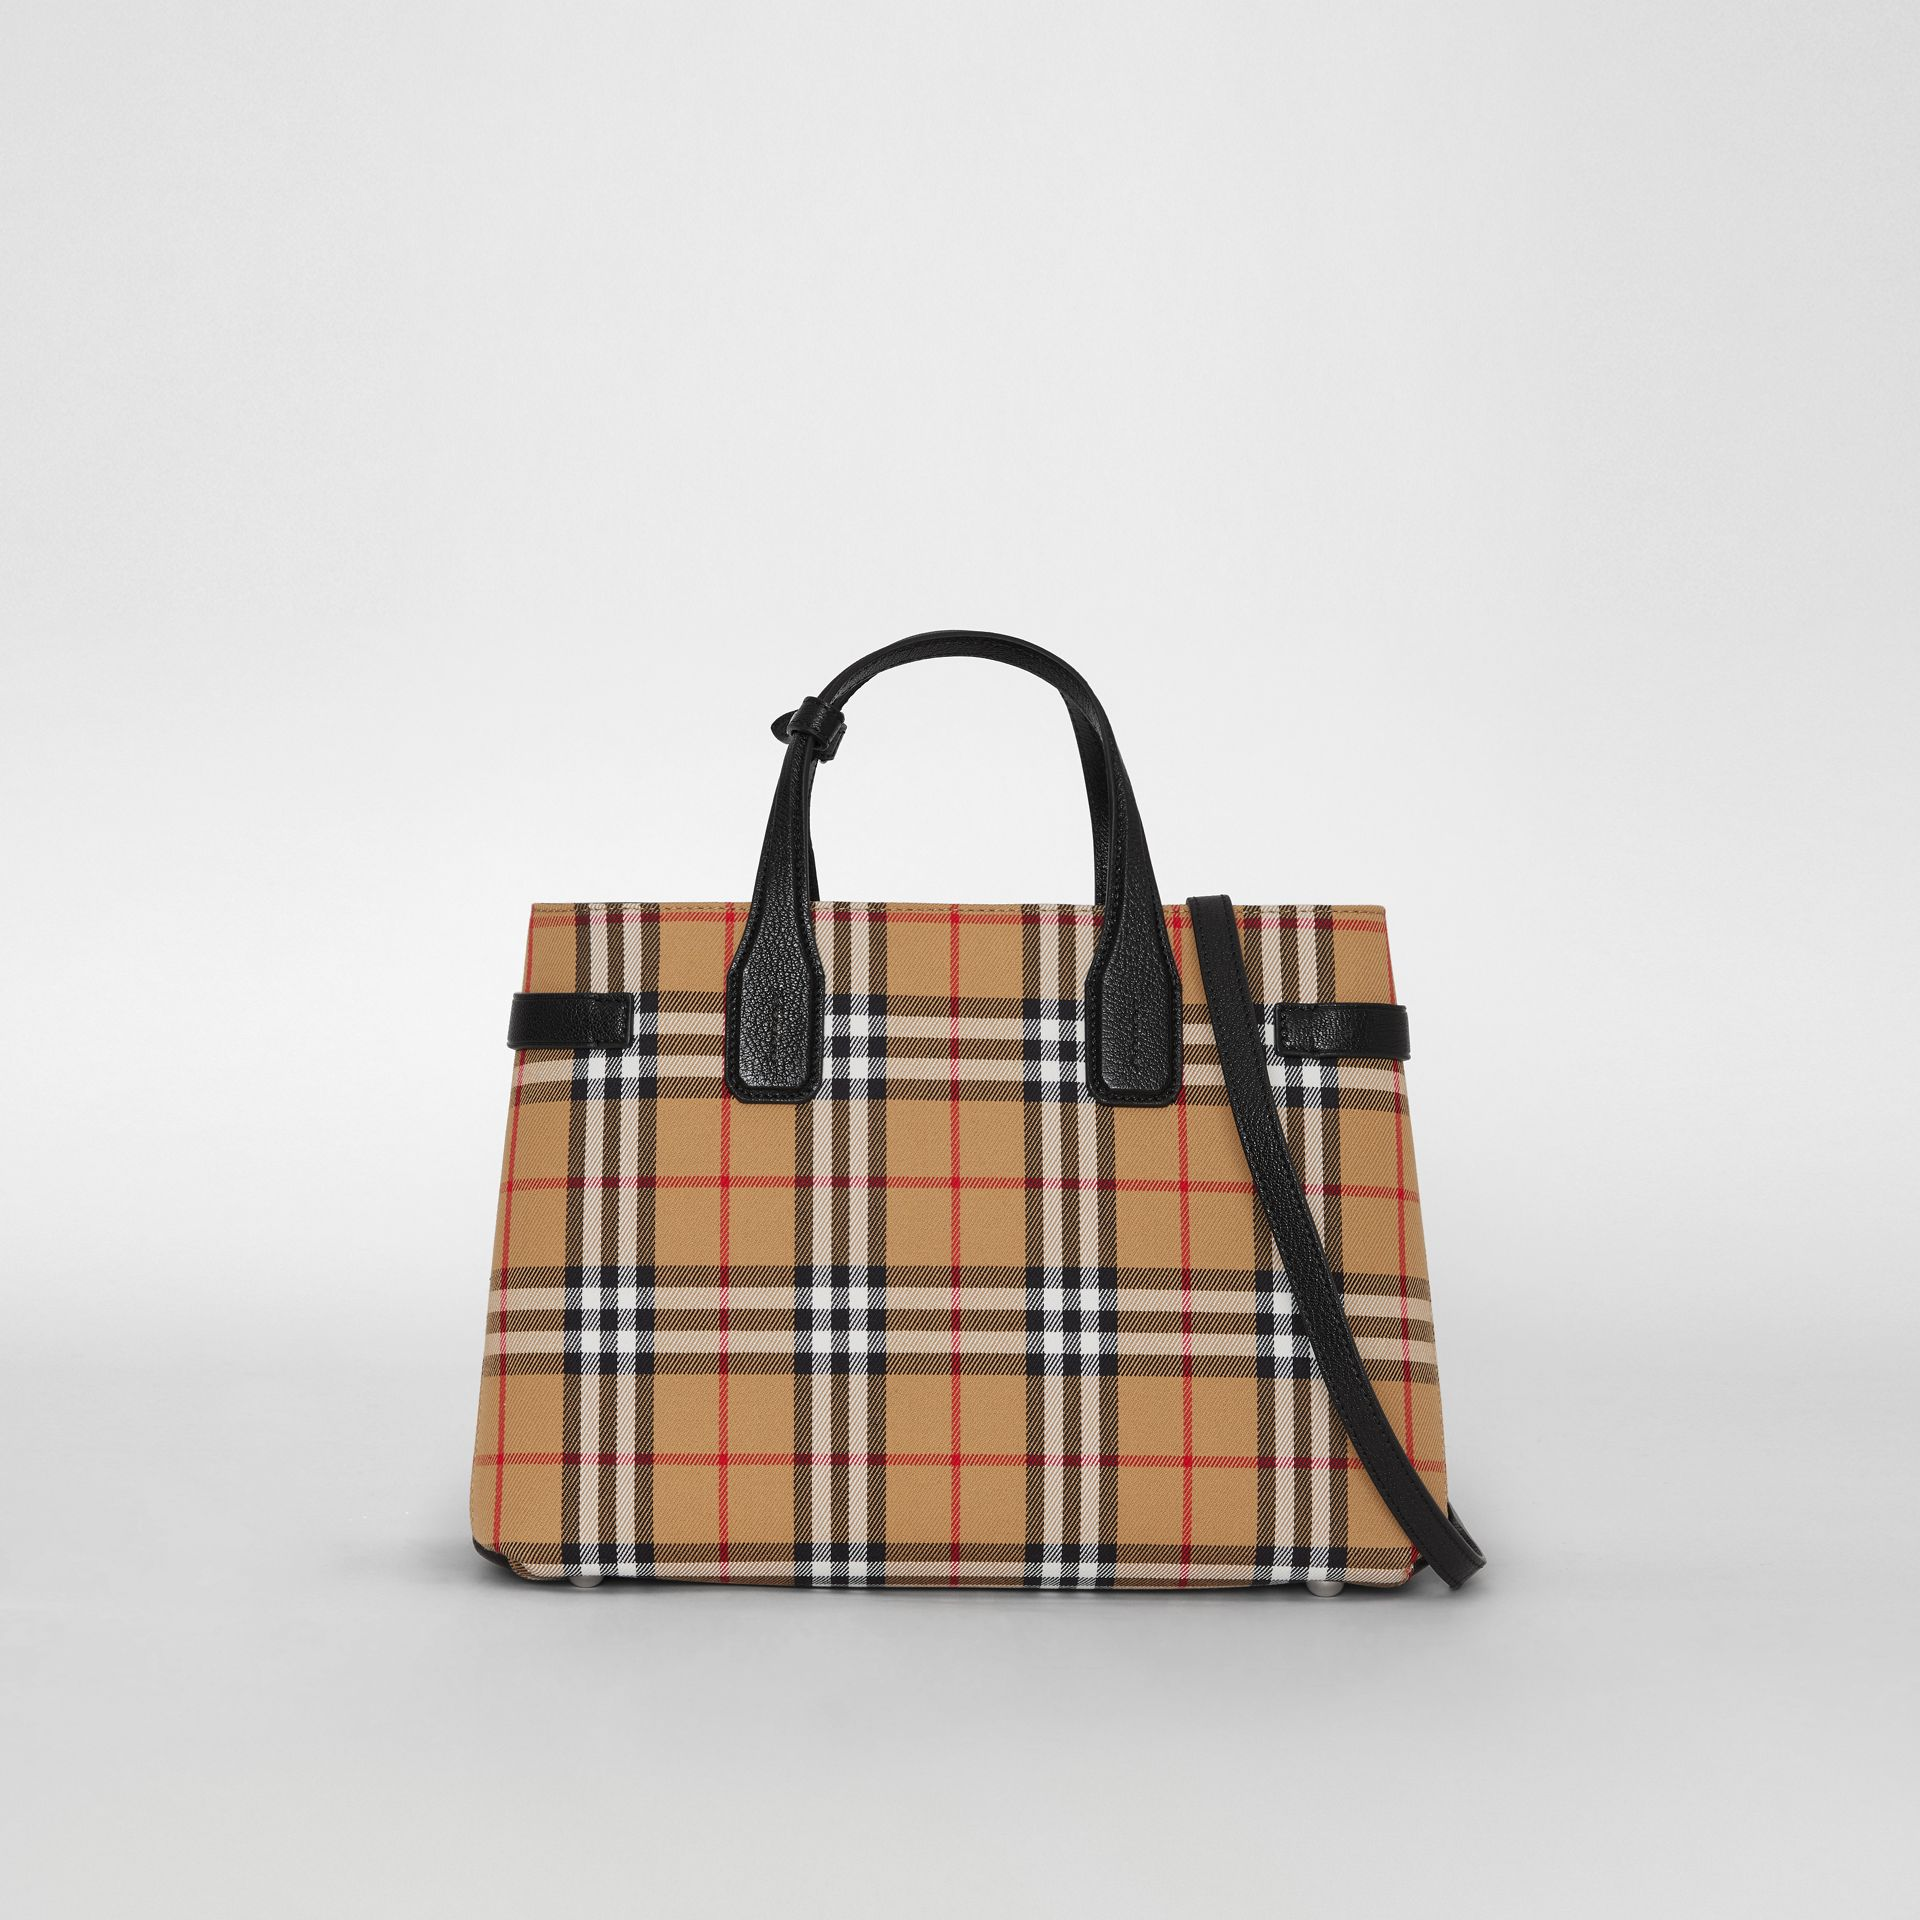 Sac The Banner moyen en cuir et Vintage check (Noir) - Femme | Burberry Canada - photo de la galerie 0